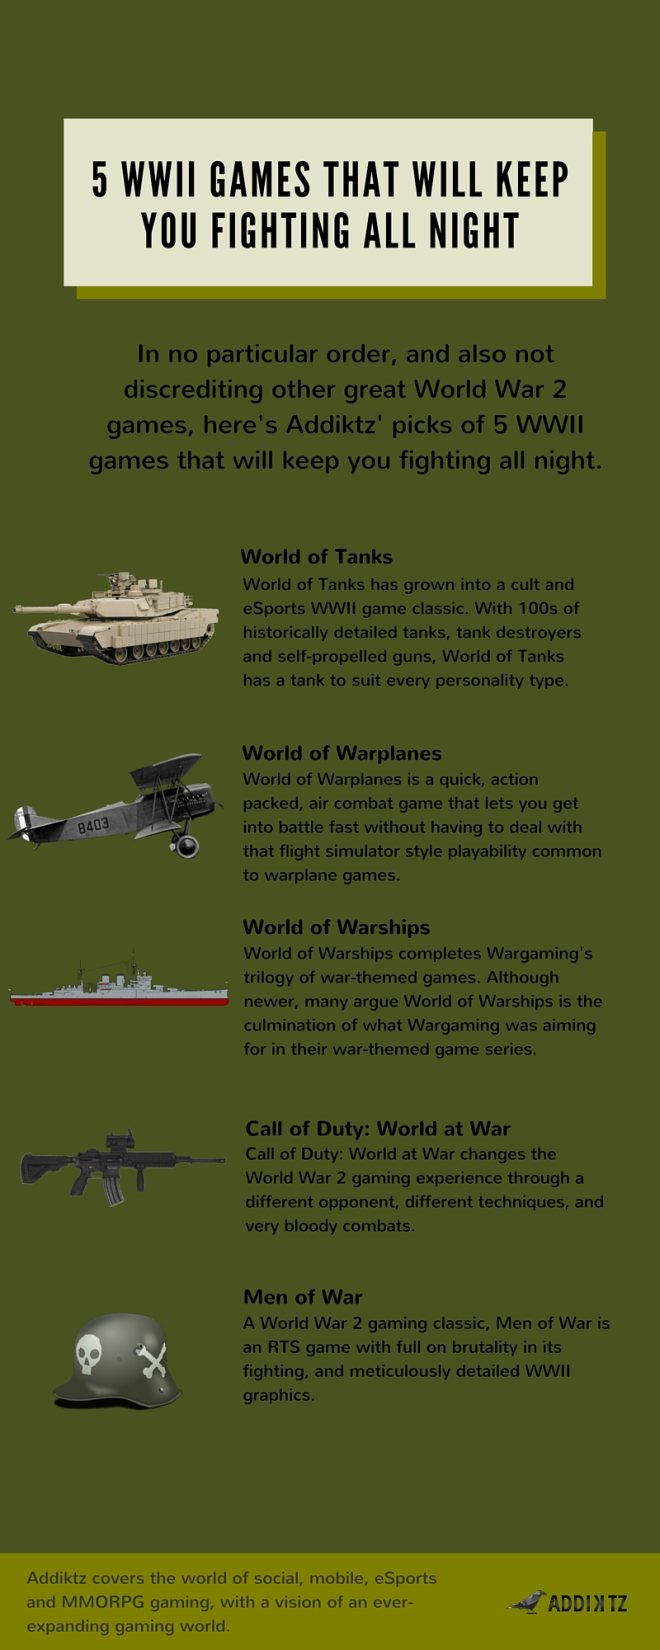 5 WWII Games That Will Keep You Fighting All Night | War Games Infographic